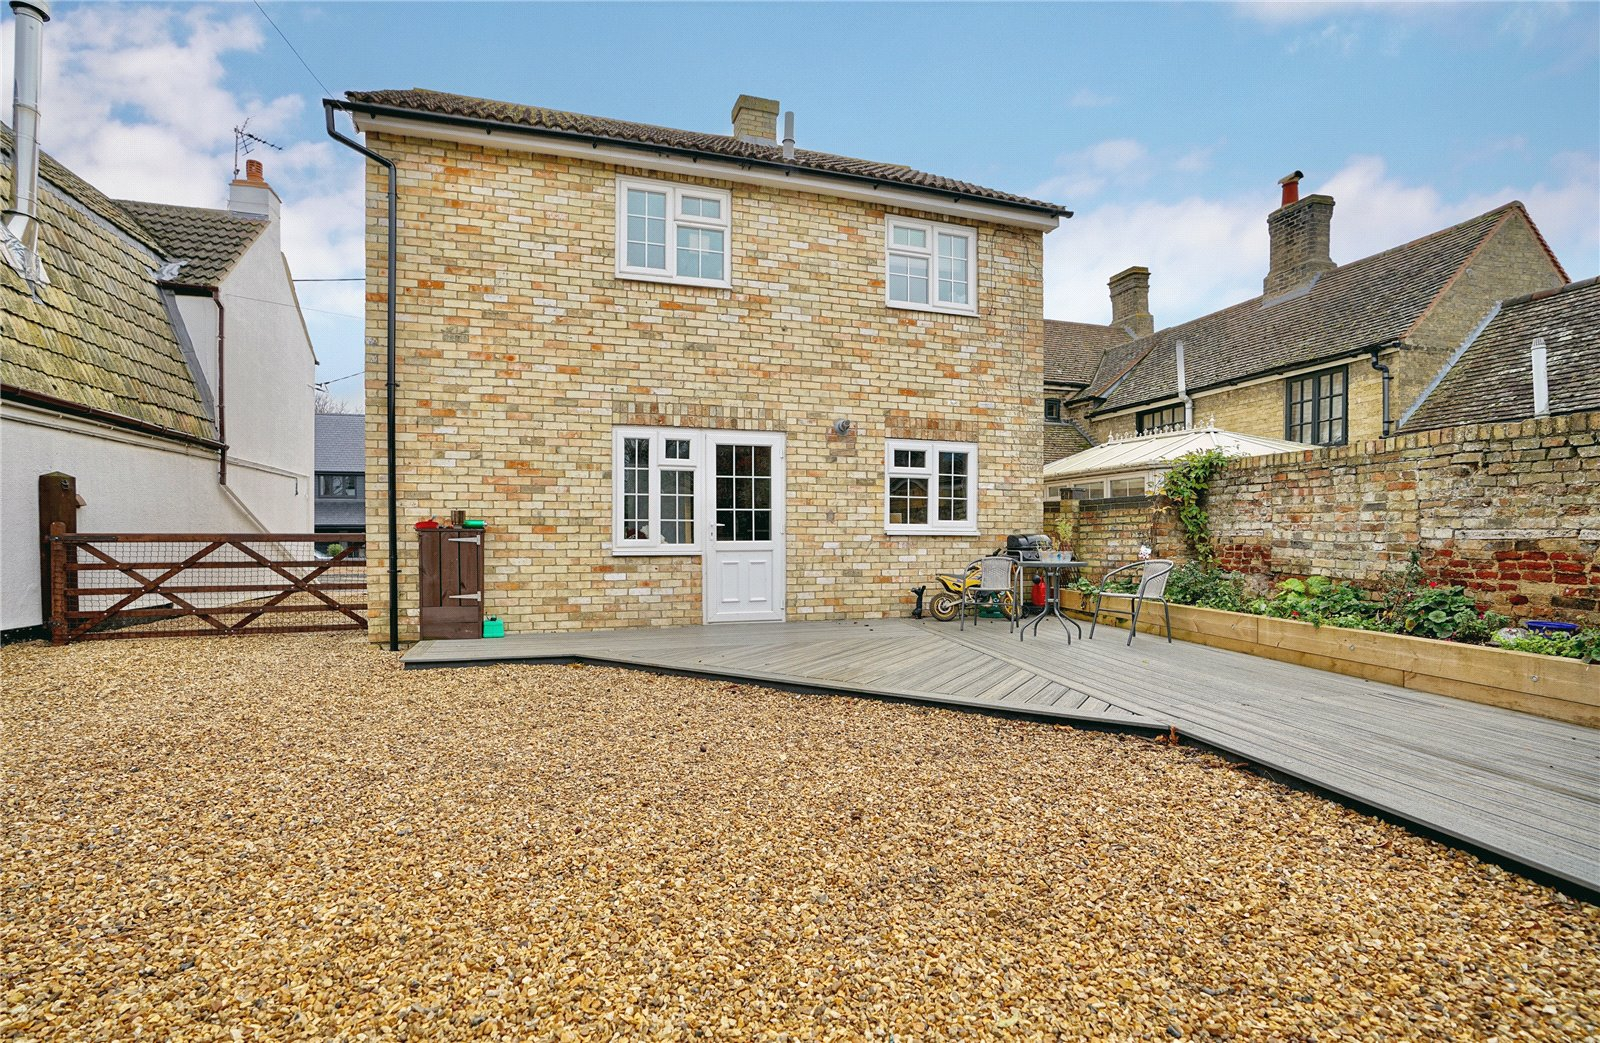 3 bed house for sale in Earith, PE28 3PP - Property Image 1